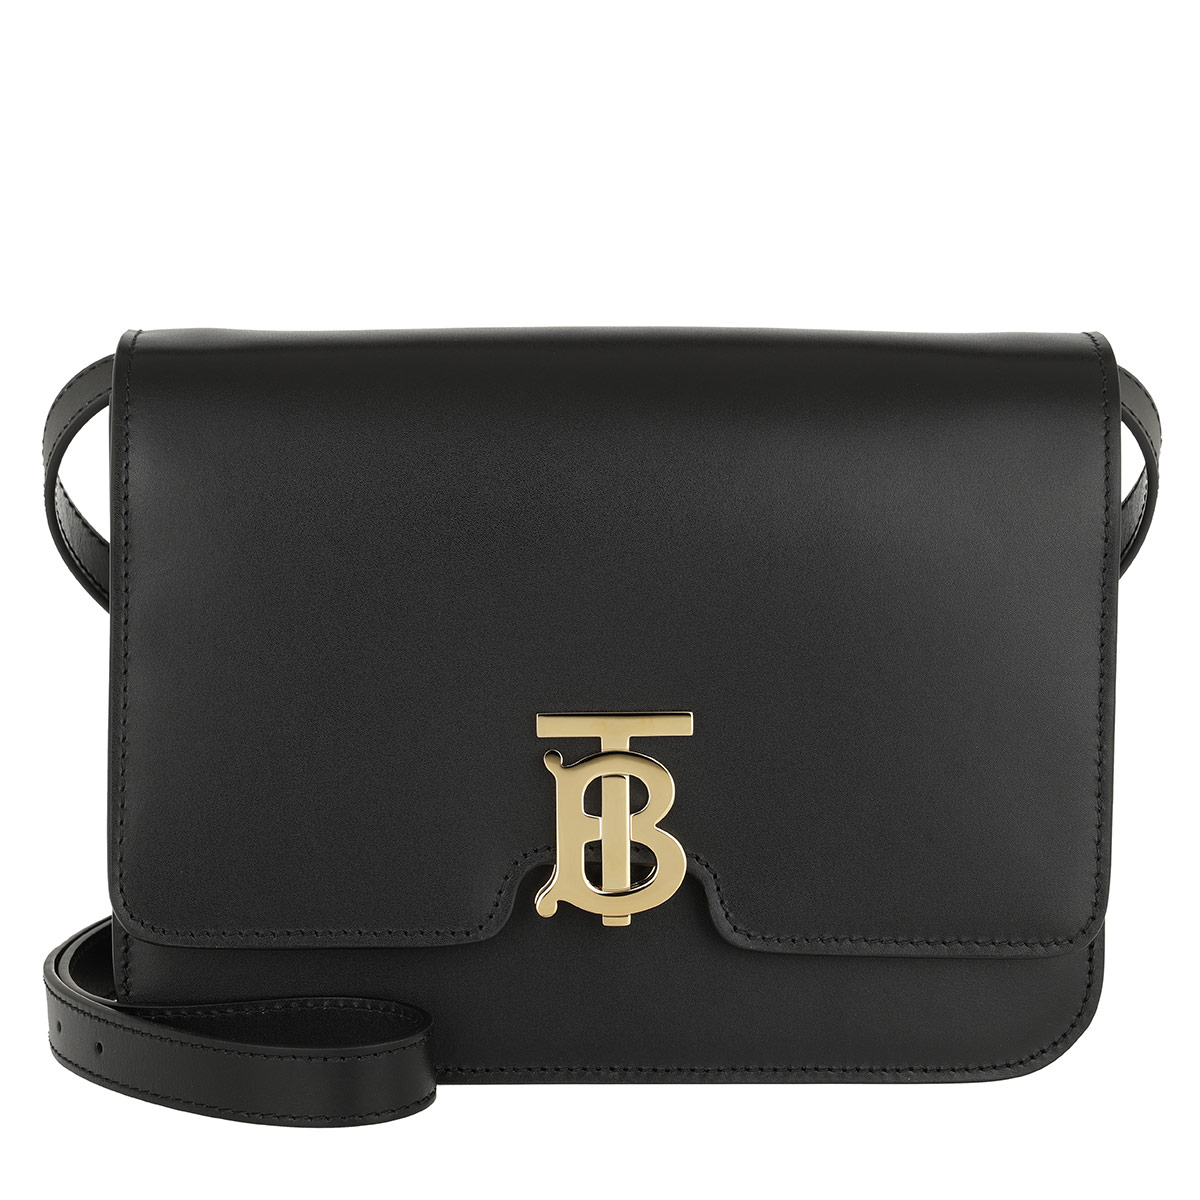 Burberry Umhängetasche - TB Medium Shoulder Bag Leather Black - in schwarz - für Damen